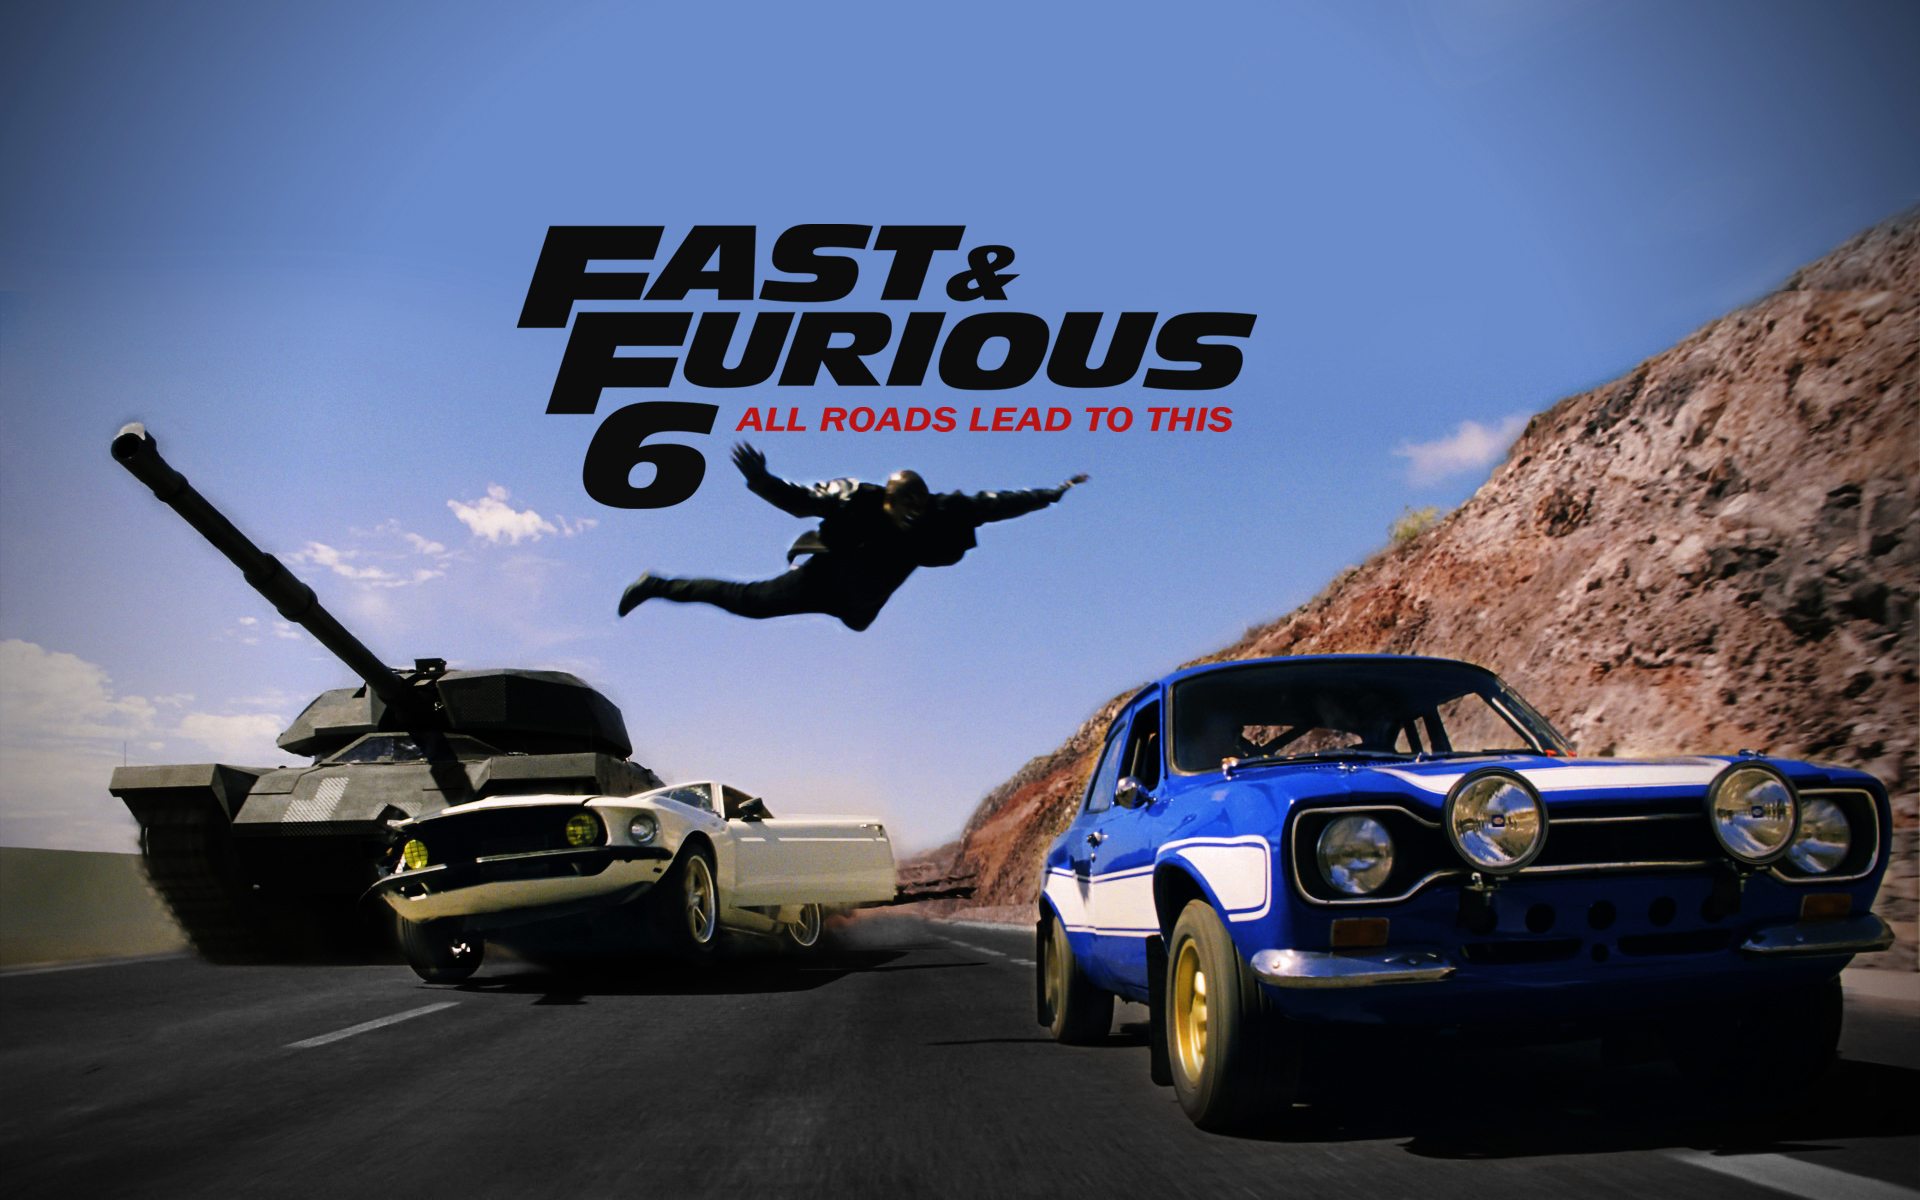 fast and furious 6 wallpapershd wallpapers - Fast And Furious 6 Cars Wallpapers